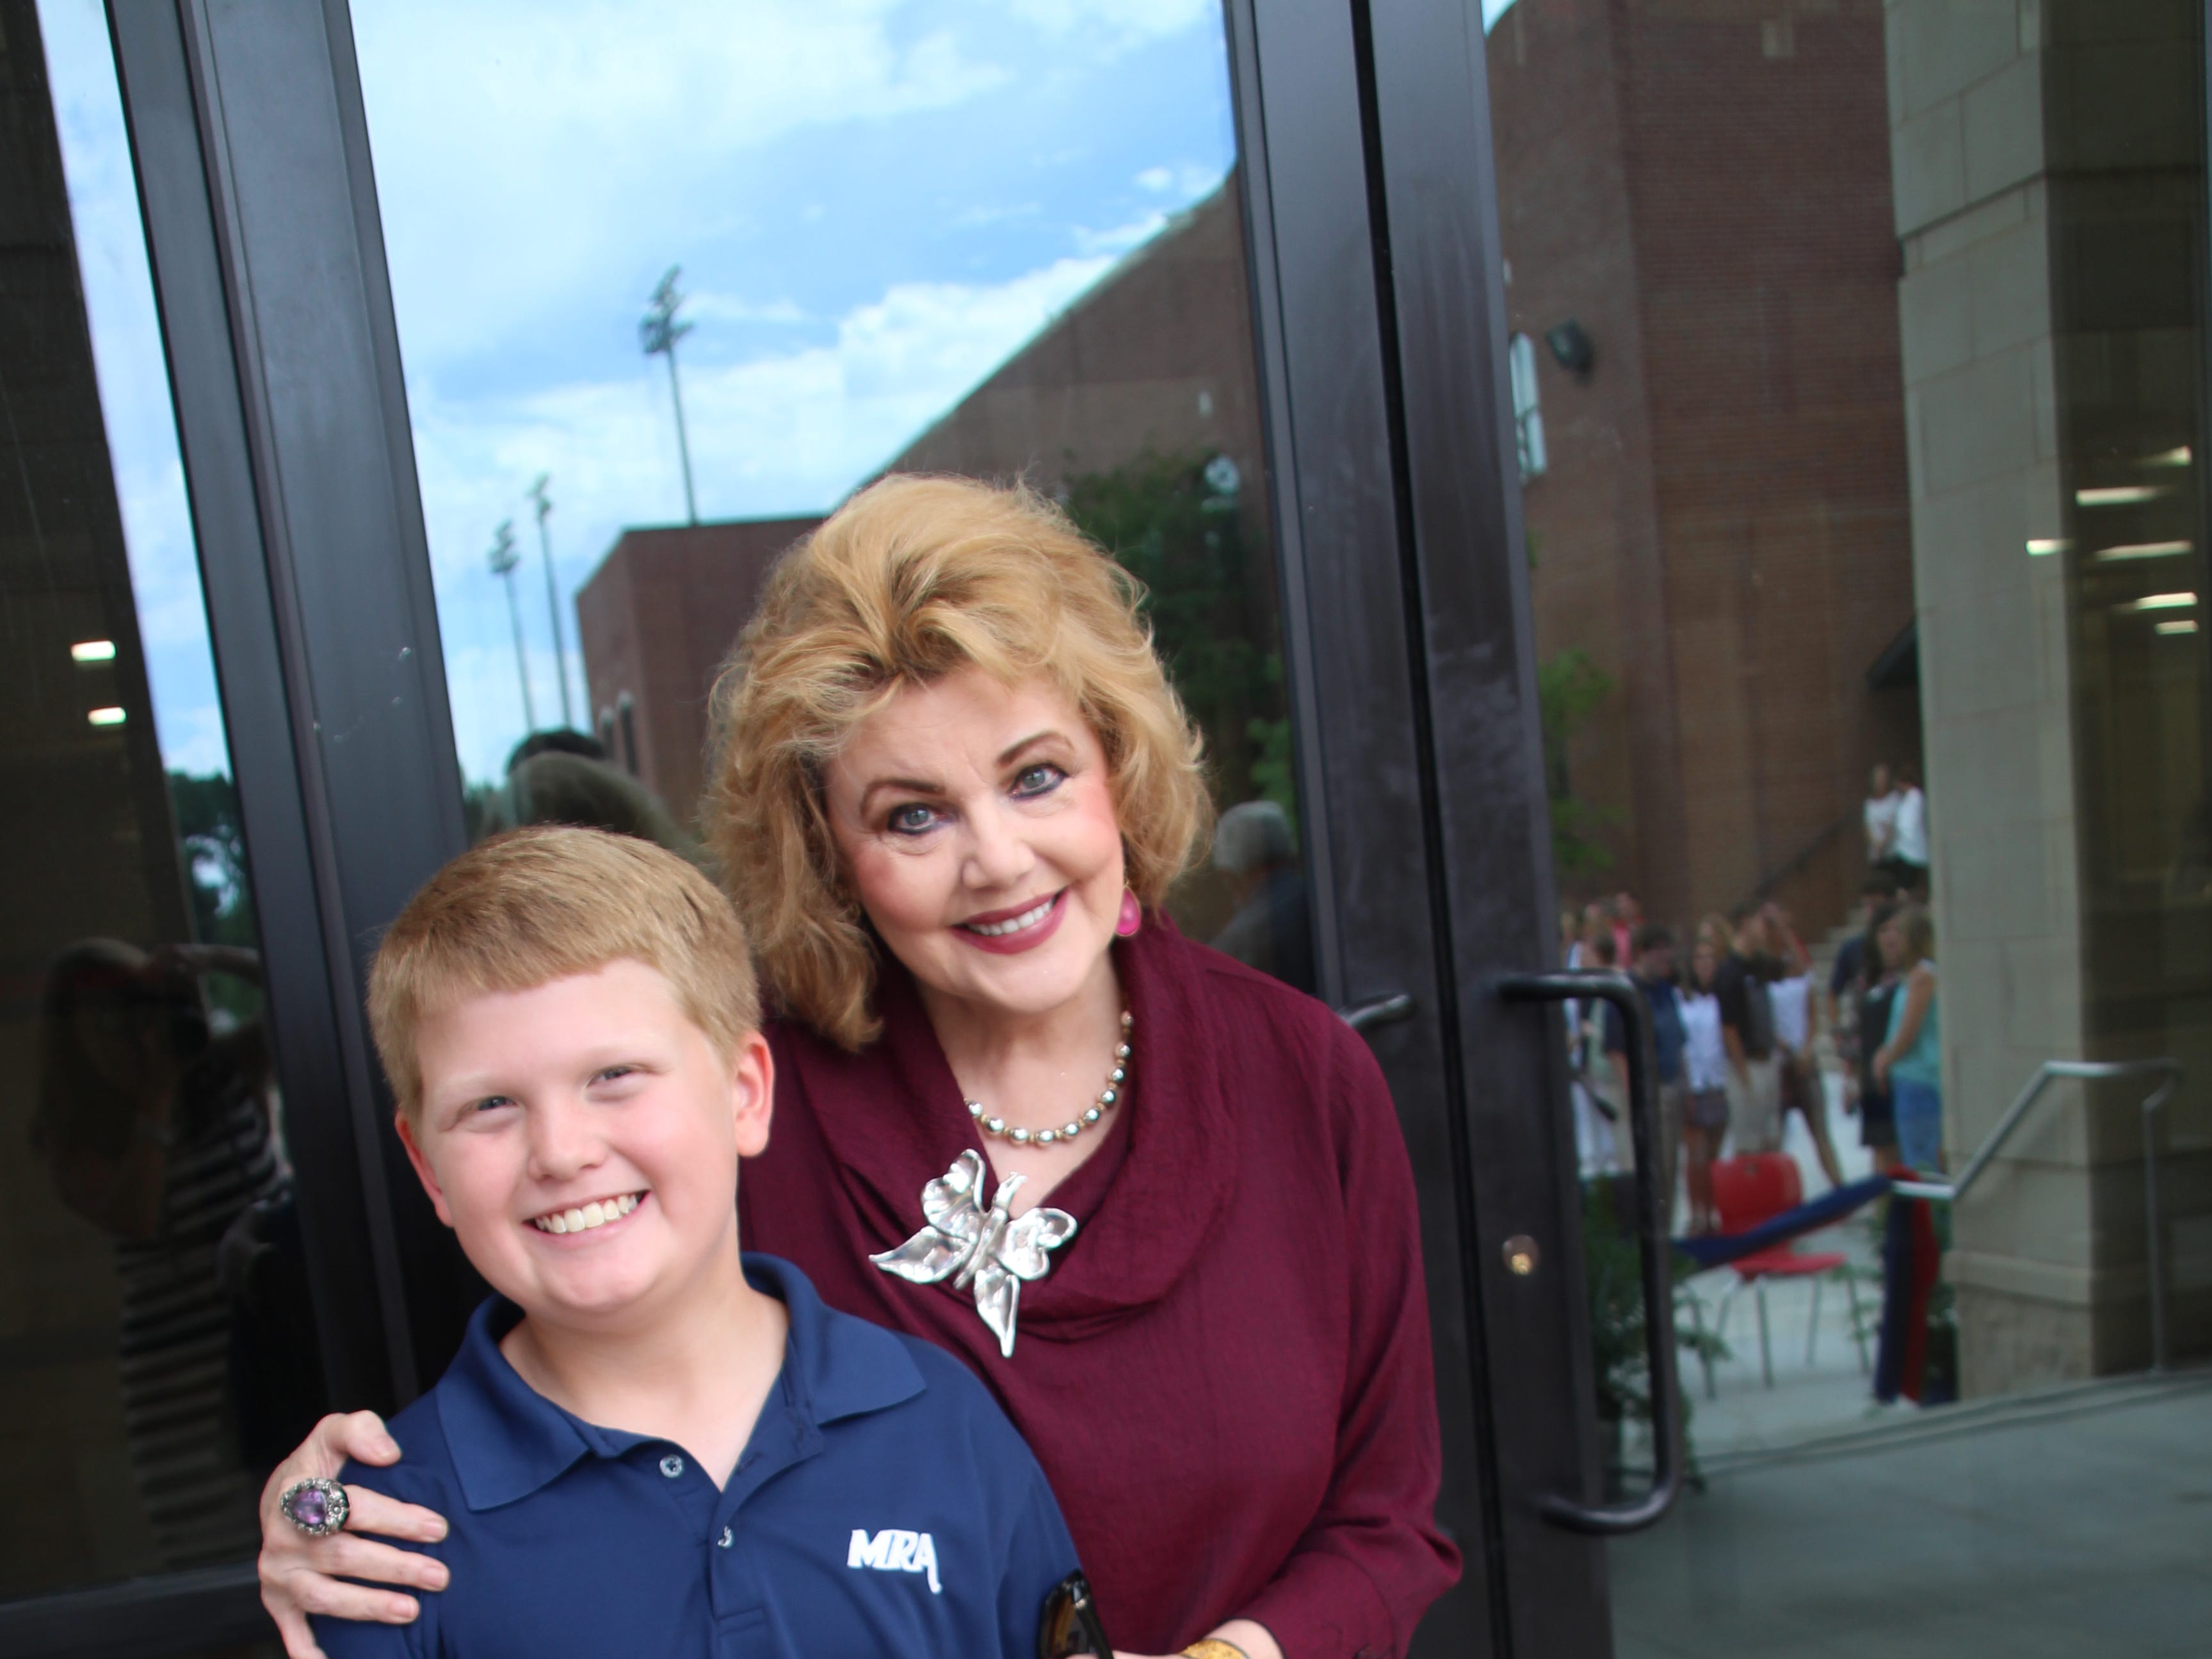 Madison Mayor Mary Hawkins Butler and Student Council Member Thomas Blanks strike a pose.